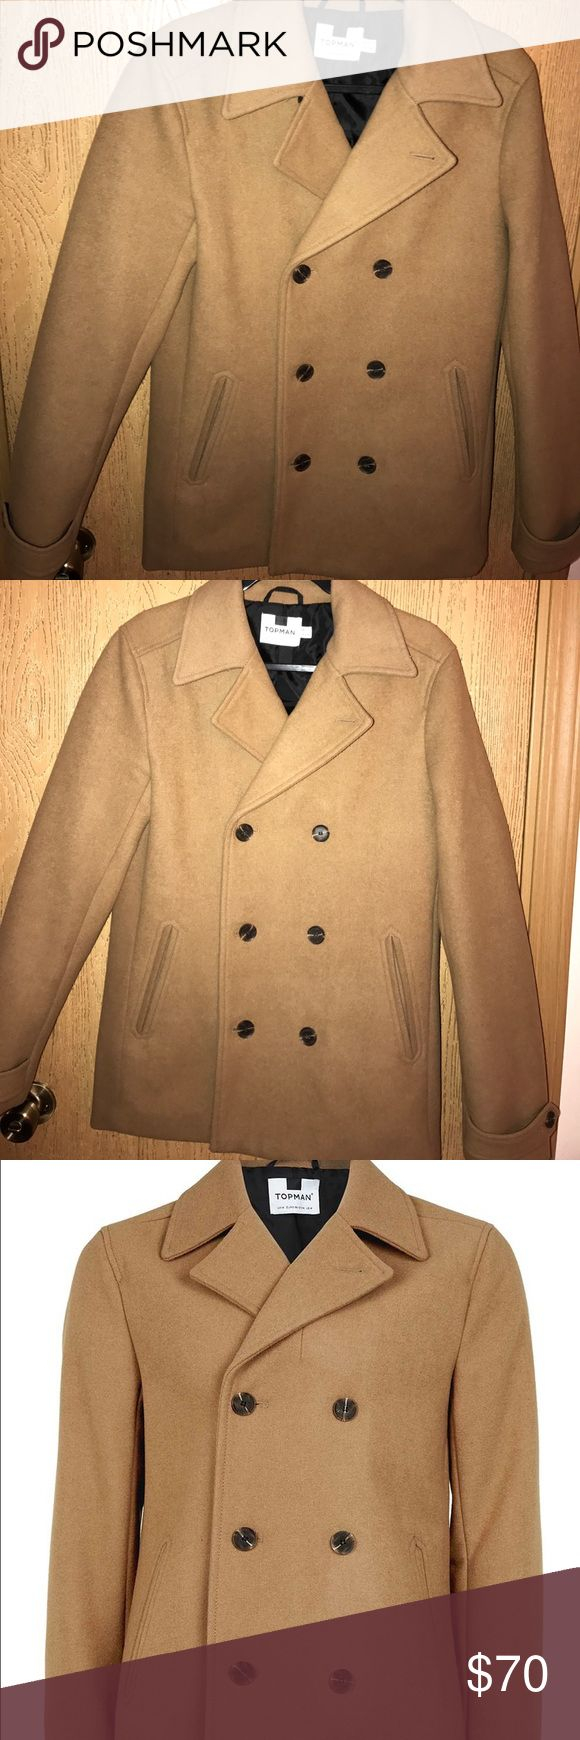 Roman Camel Peacoat - Camel wool peacoat with button details . 50% Wool, 40% Polyester, 10% Viscose Dry clean only. Like new worn a couple times.no defects . -Sz Small 36-38 Topman Jackets & Coats Pea Coats